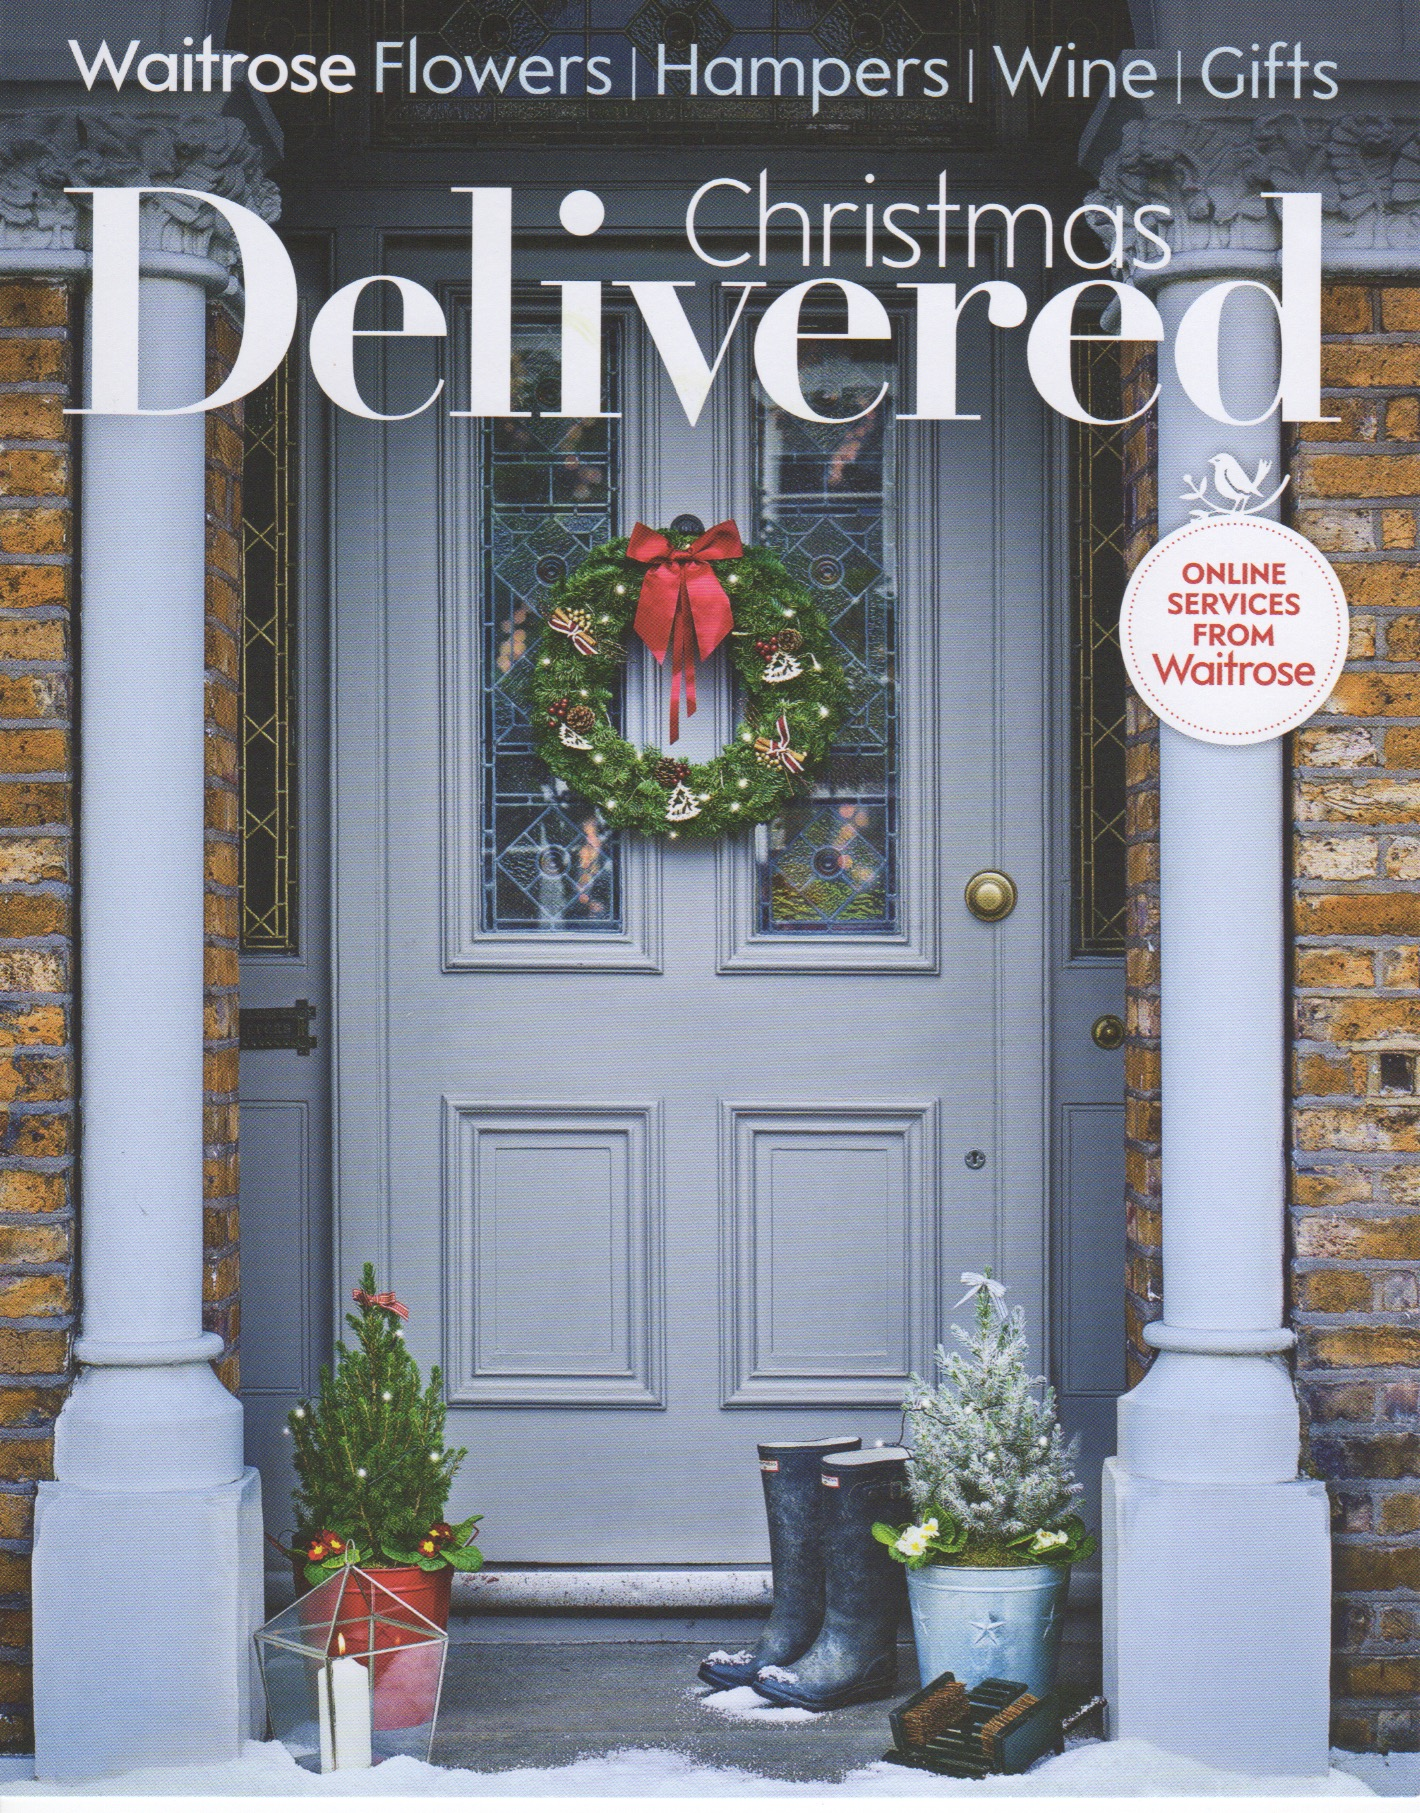 Waitrose waitrose christmas delivered brochure 2015 front cover solutioingenieria